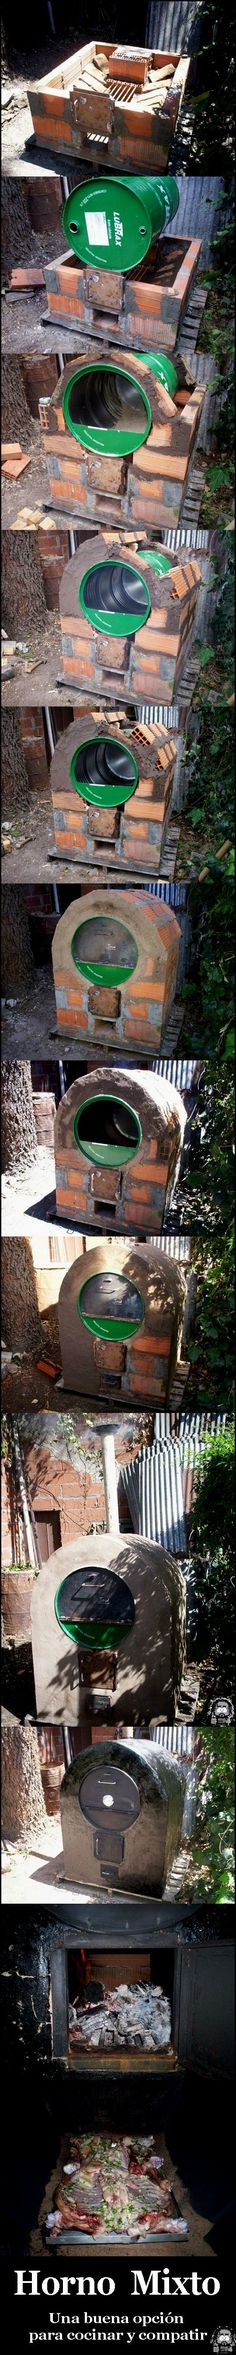 looks like a pizza oven Pizza Oven Outdoor, Outdoor Cooking, Outdoor Projects, Home Projects, Wood Fired Oven, Ideias Diy, Rocket Stoves, Outdoor Living, Garden Design